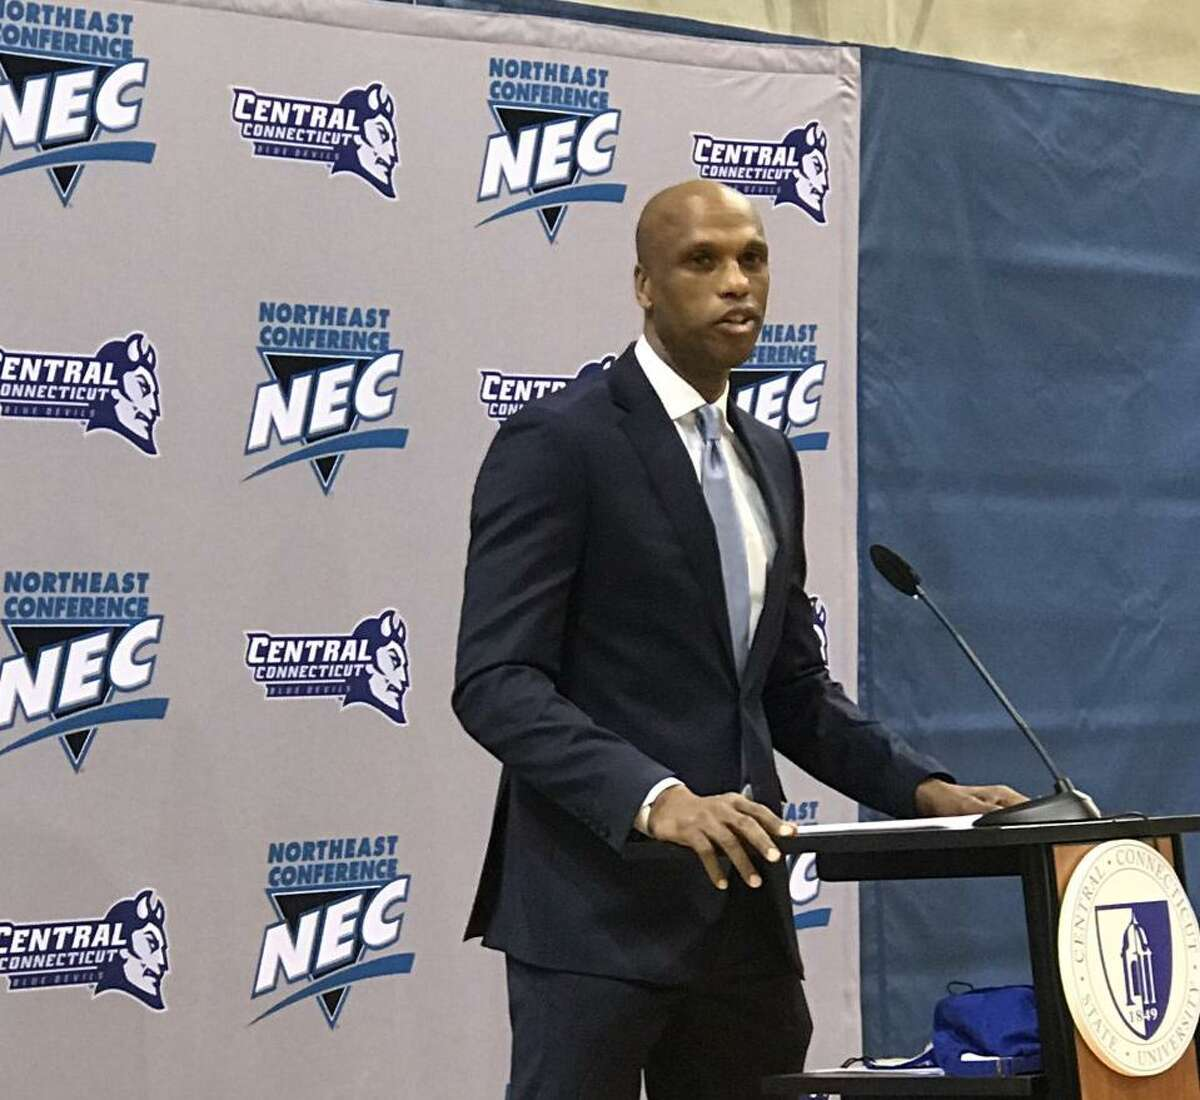 Patrick Sellers introduced as new Central Connecticut State basketball coach.